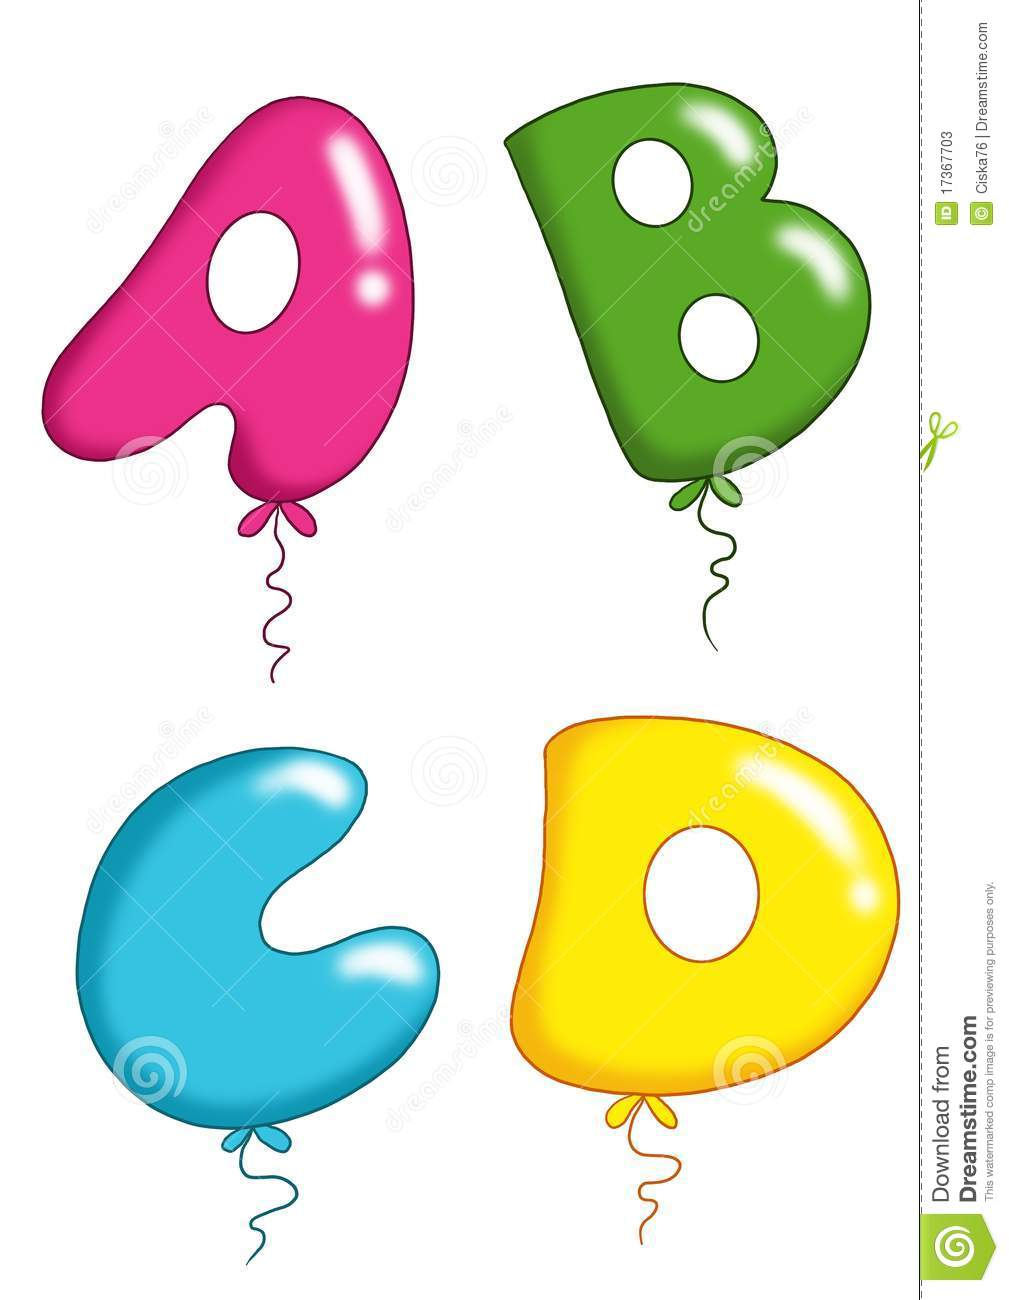 Balloon Letters Free Download